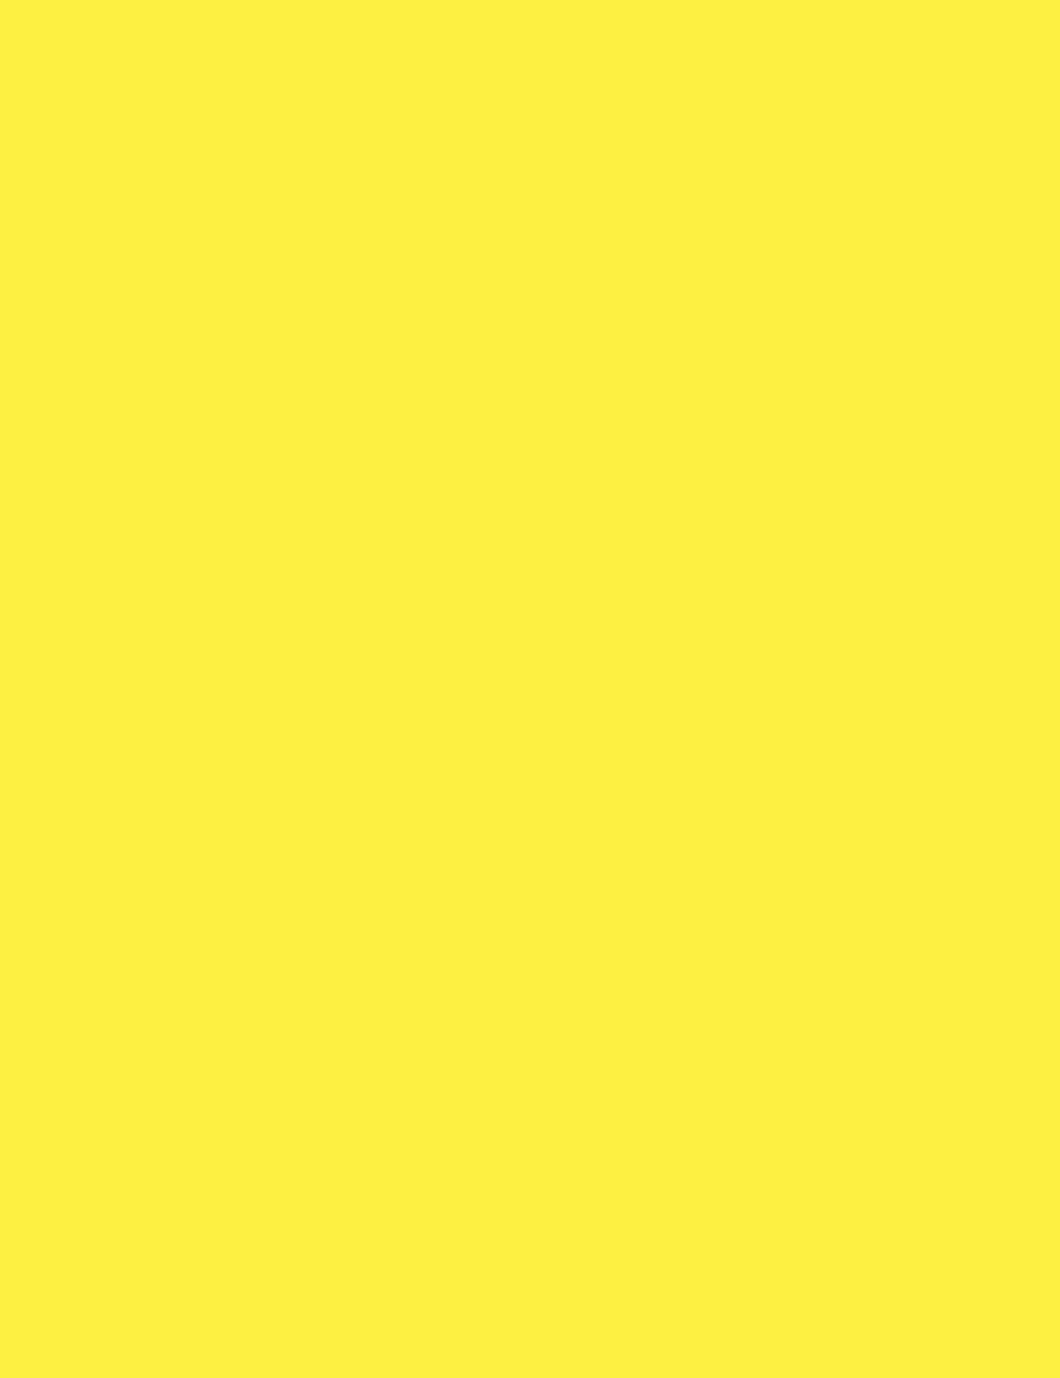 Canary Yellow Photography Solid Fabric Backdrop - Shop Backdrop